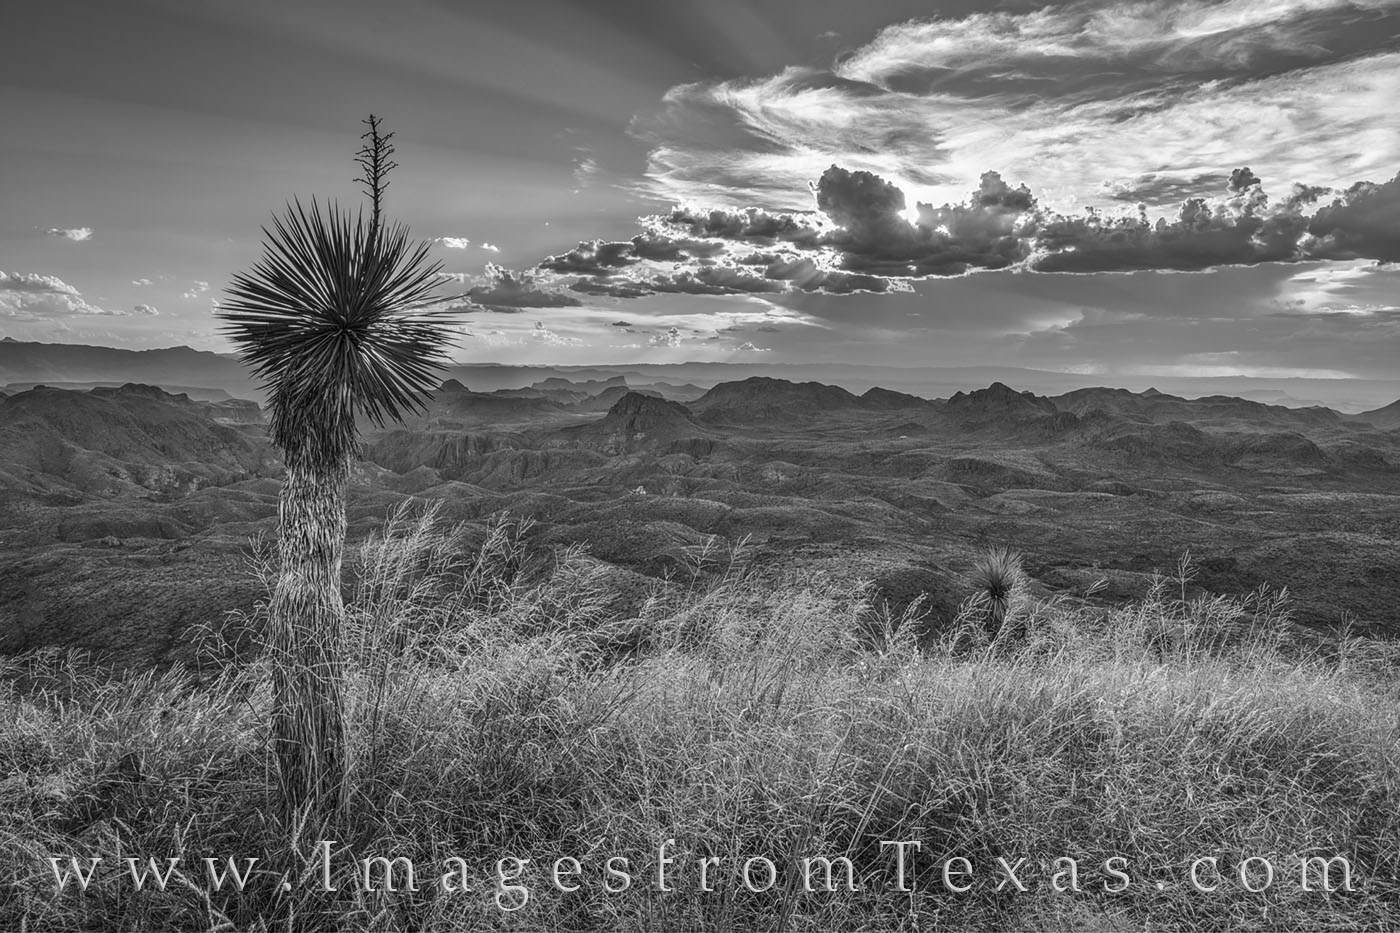 oso peak, big bend ranch, texas state parks, sunset, yucca, black and white, photo